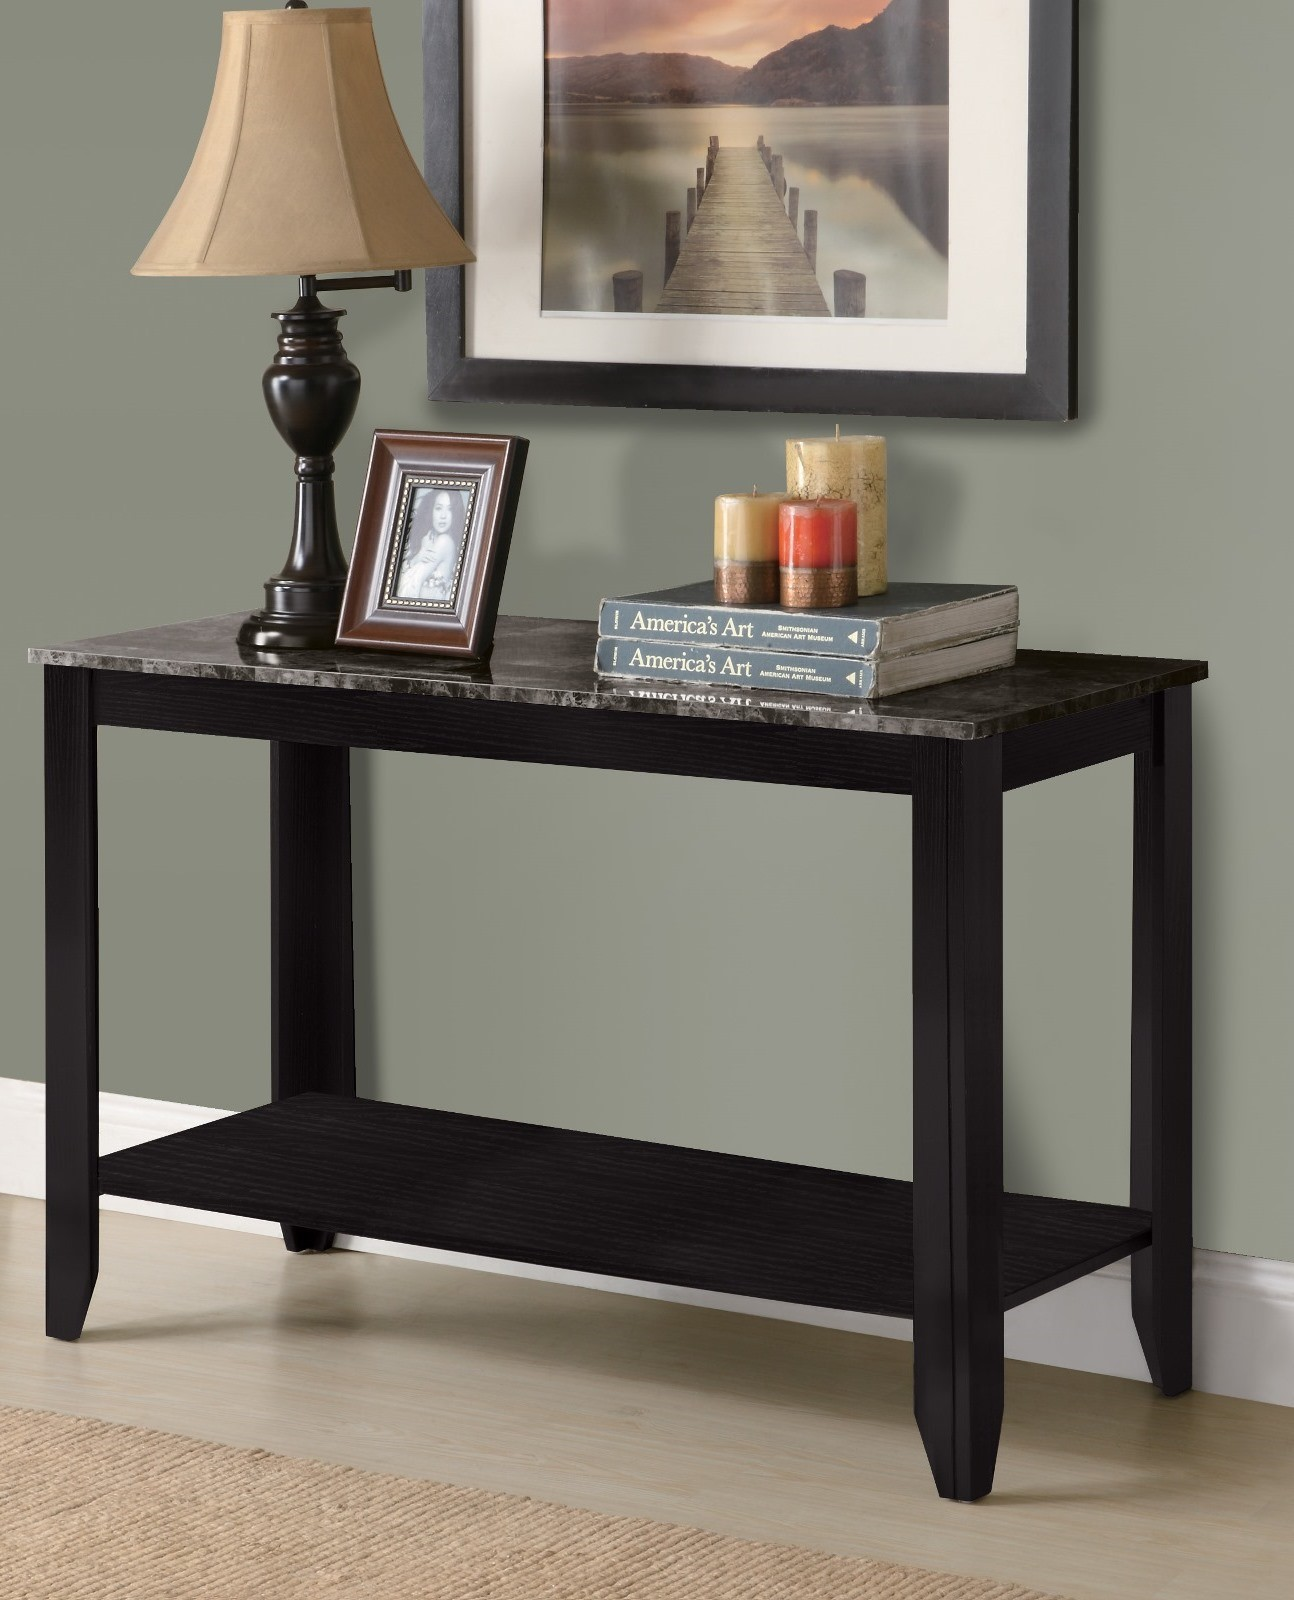 3131 black / grey sofa console table from monarch i 3131